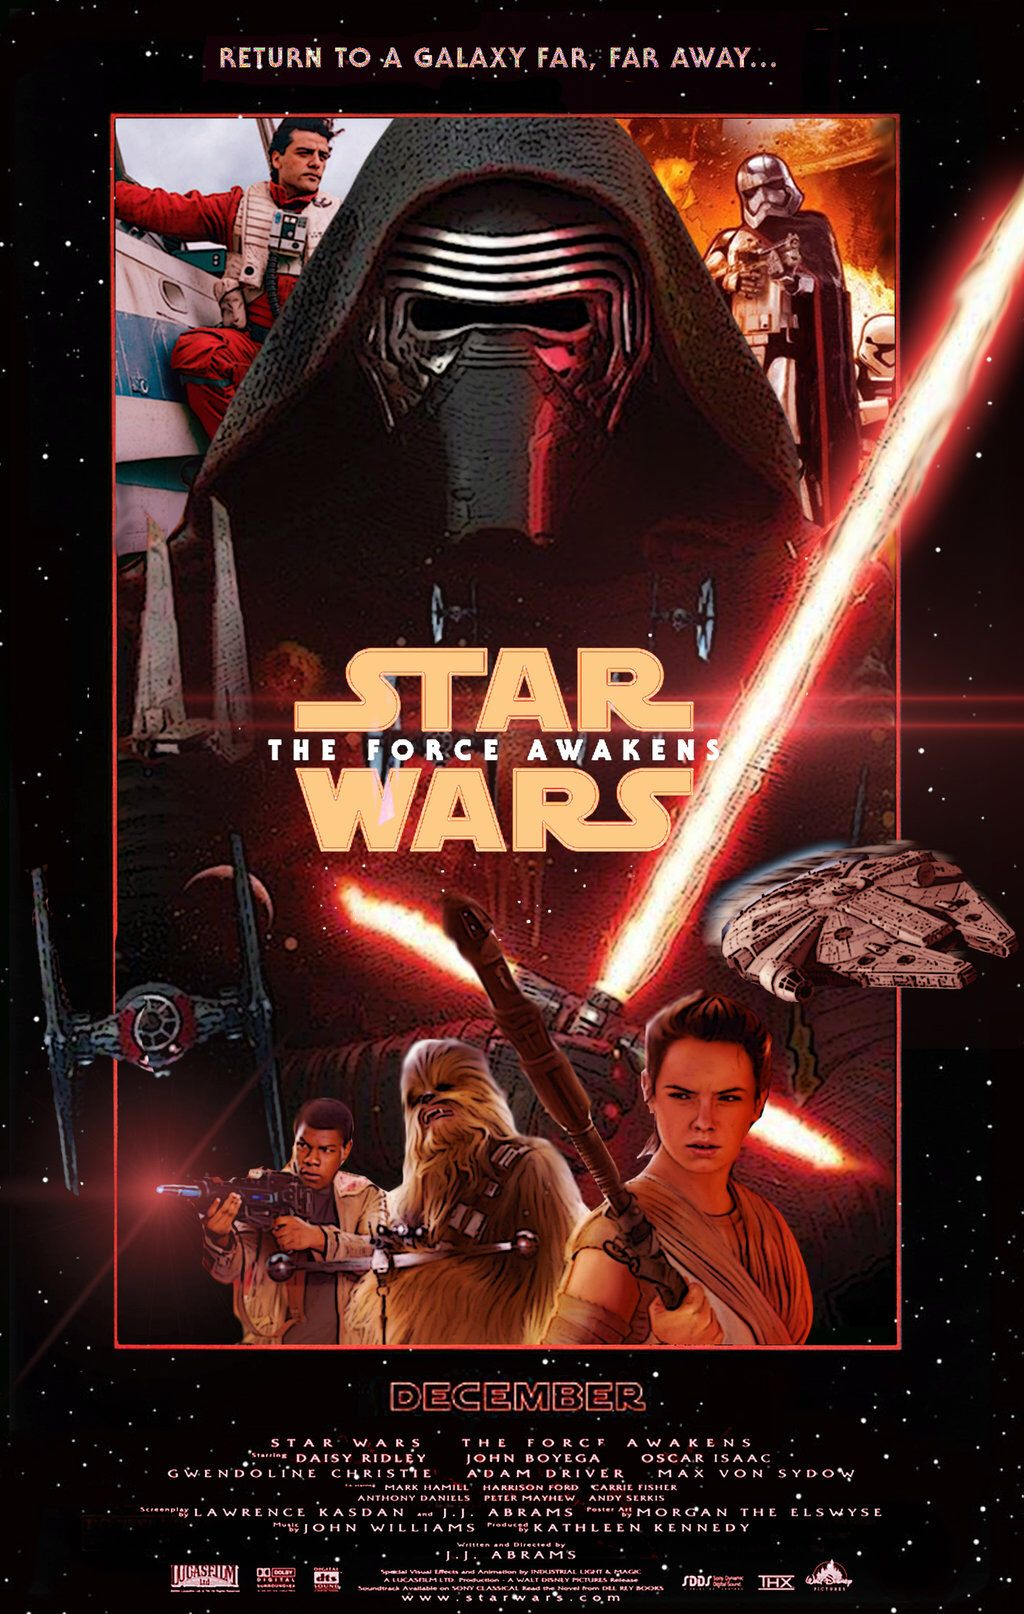 Star Wars The Force Awakens Poster Force Awakens Poster Star Wars Vii Force Awakens